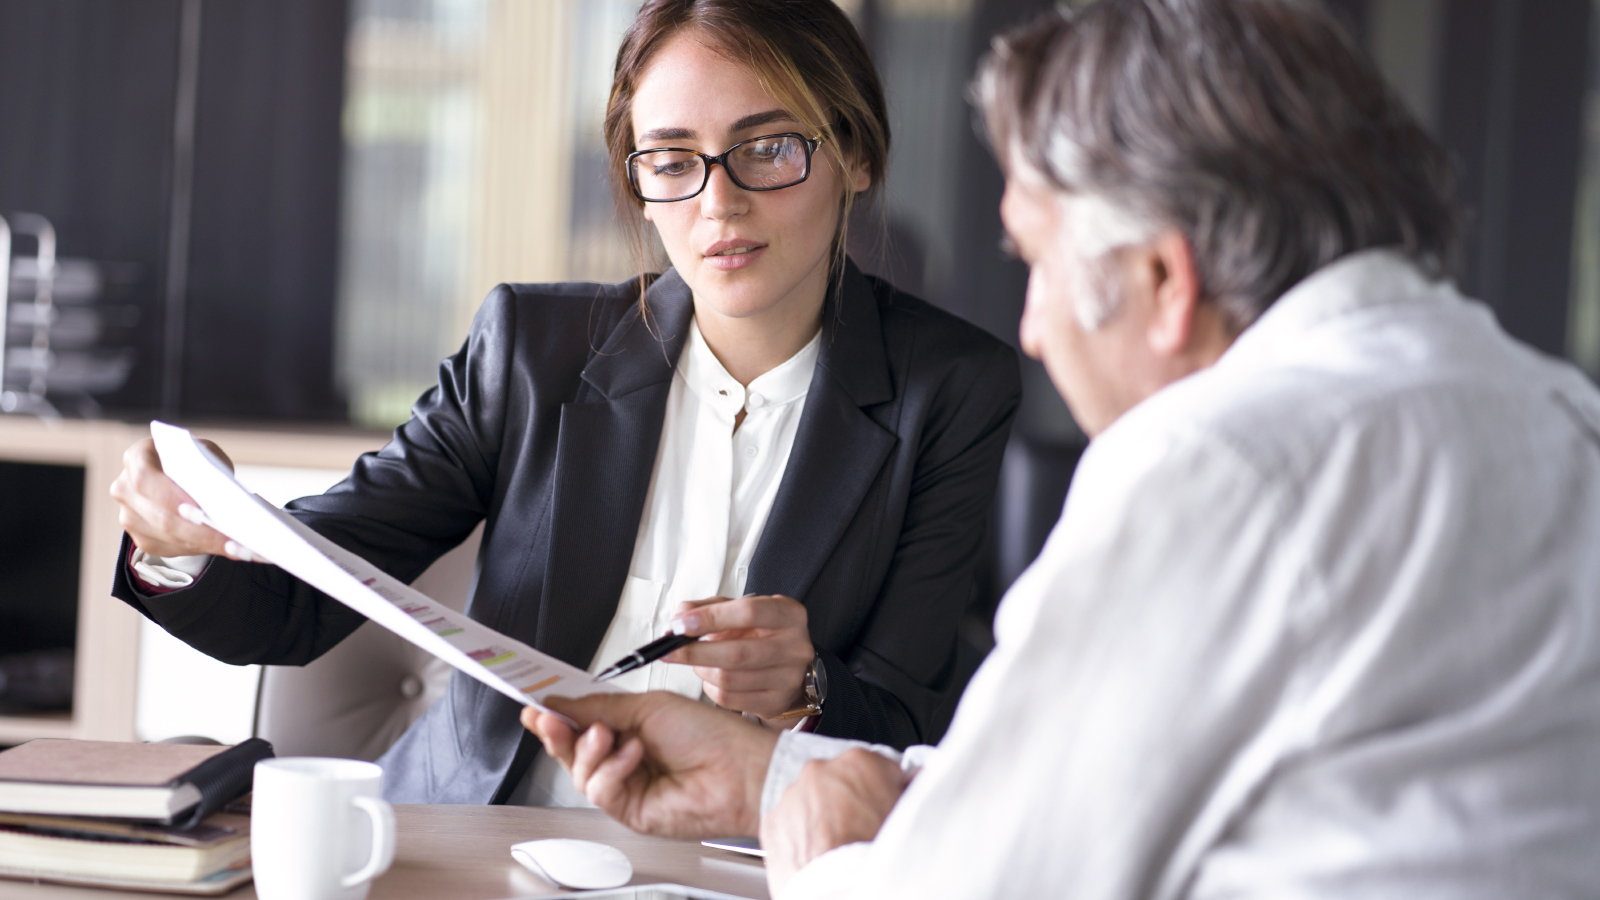 business woman showing documents to client